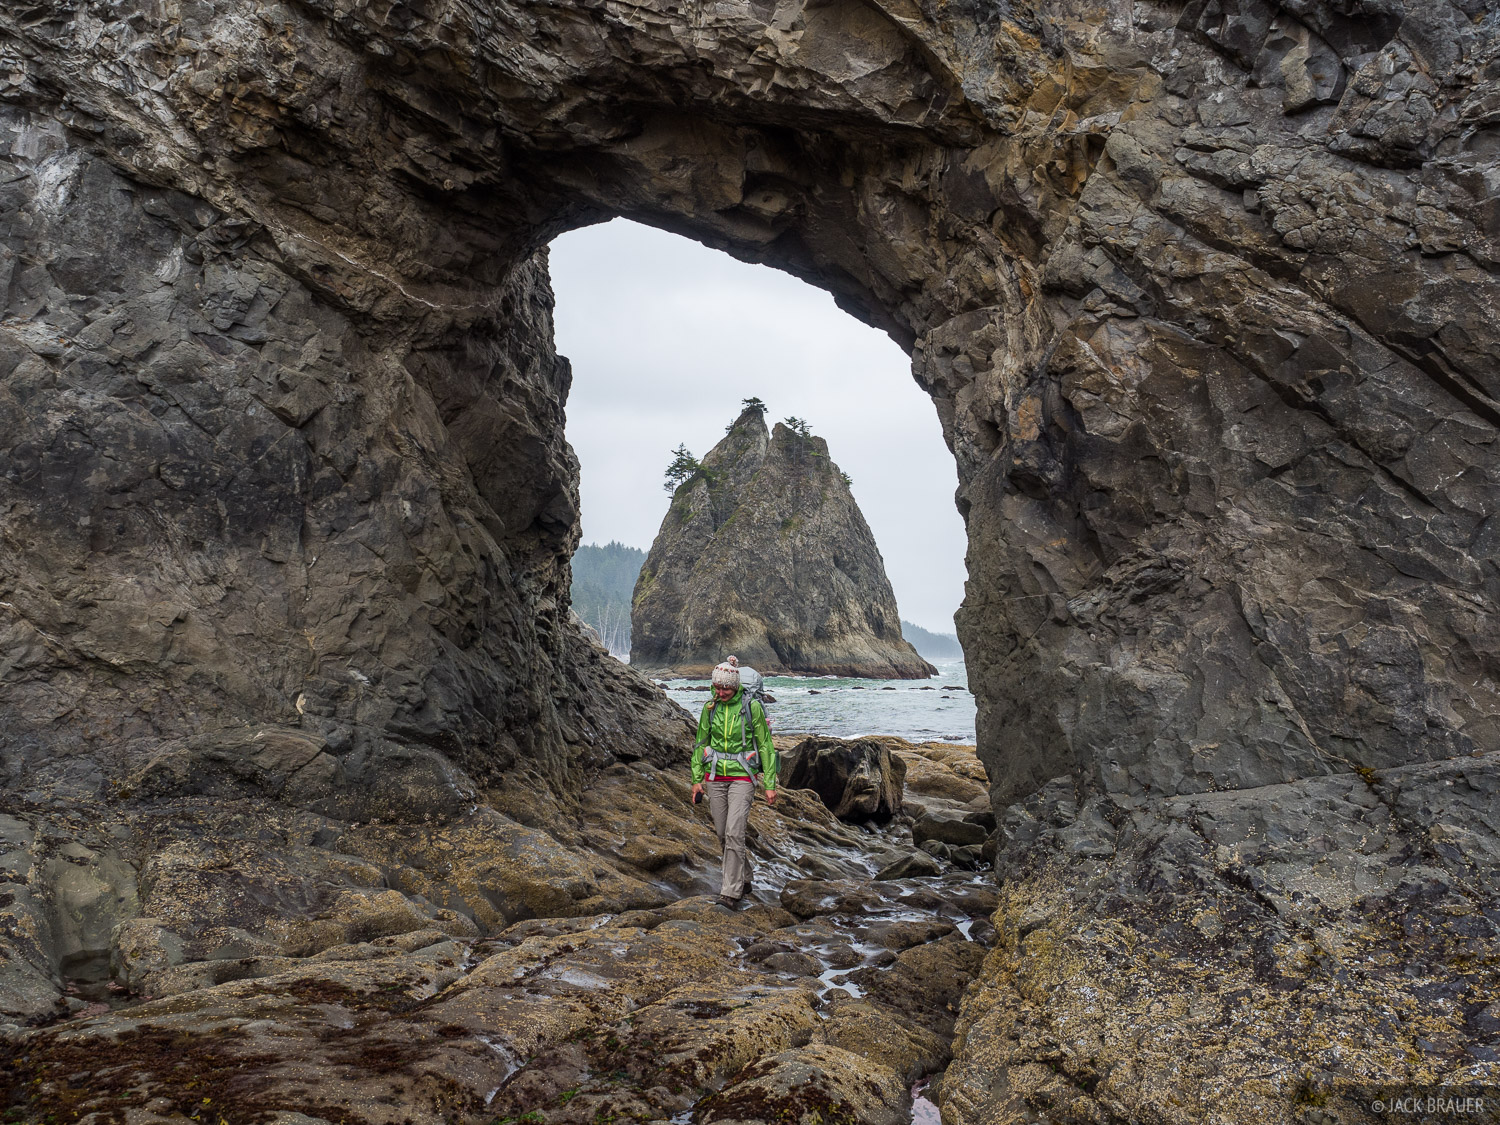 Hiking through the Hole in the Wall north from Rialto Beach.